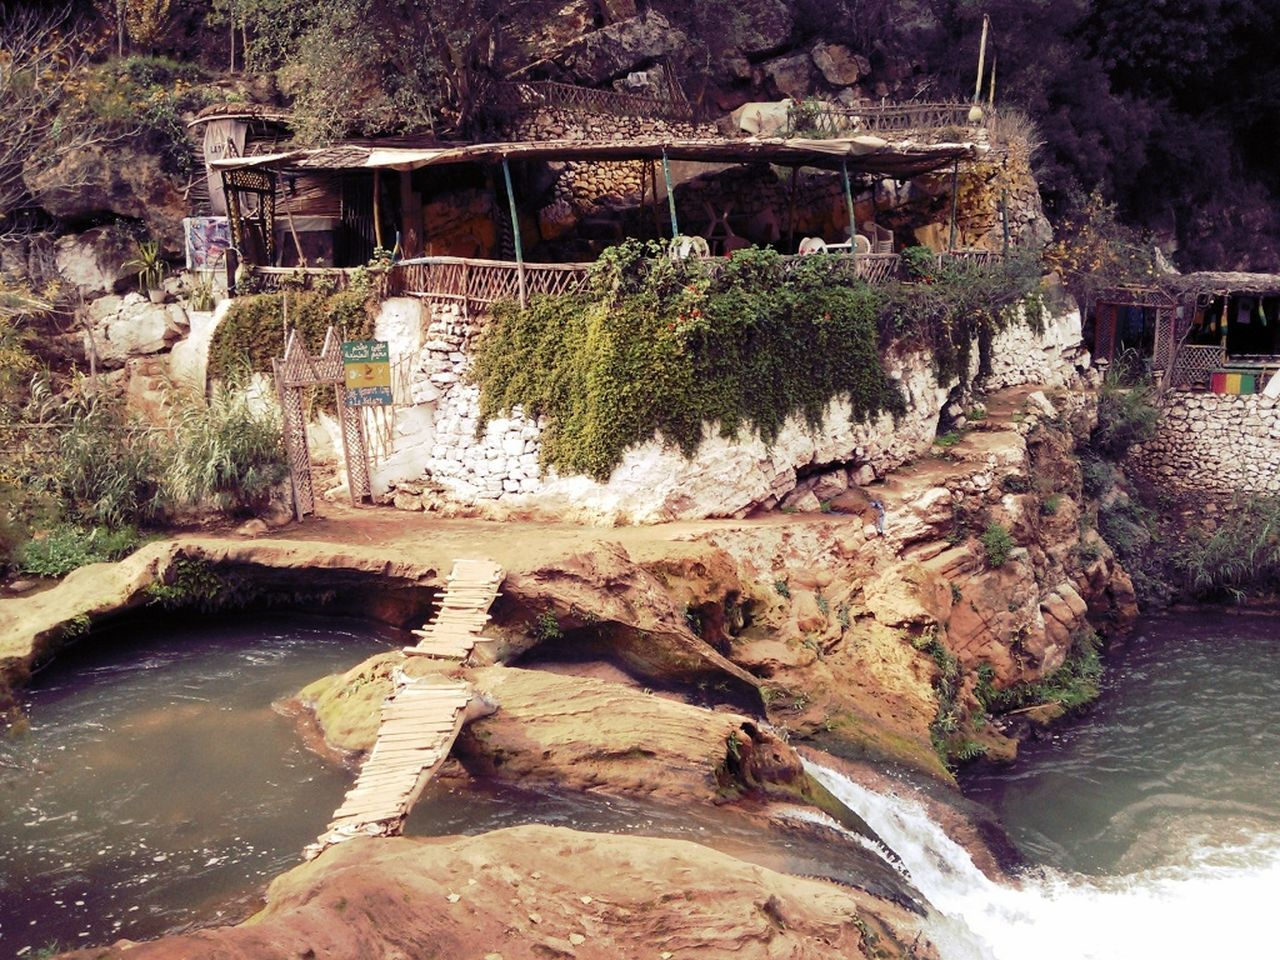 river, bridge - man made structure, water, connection, tree, rock - object, architecture, nature, no people, bridge, outdoors, built structure, waterfall, forest, scenics, day, footbridge, beauty in nature